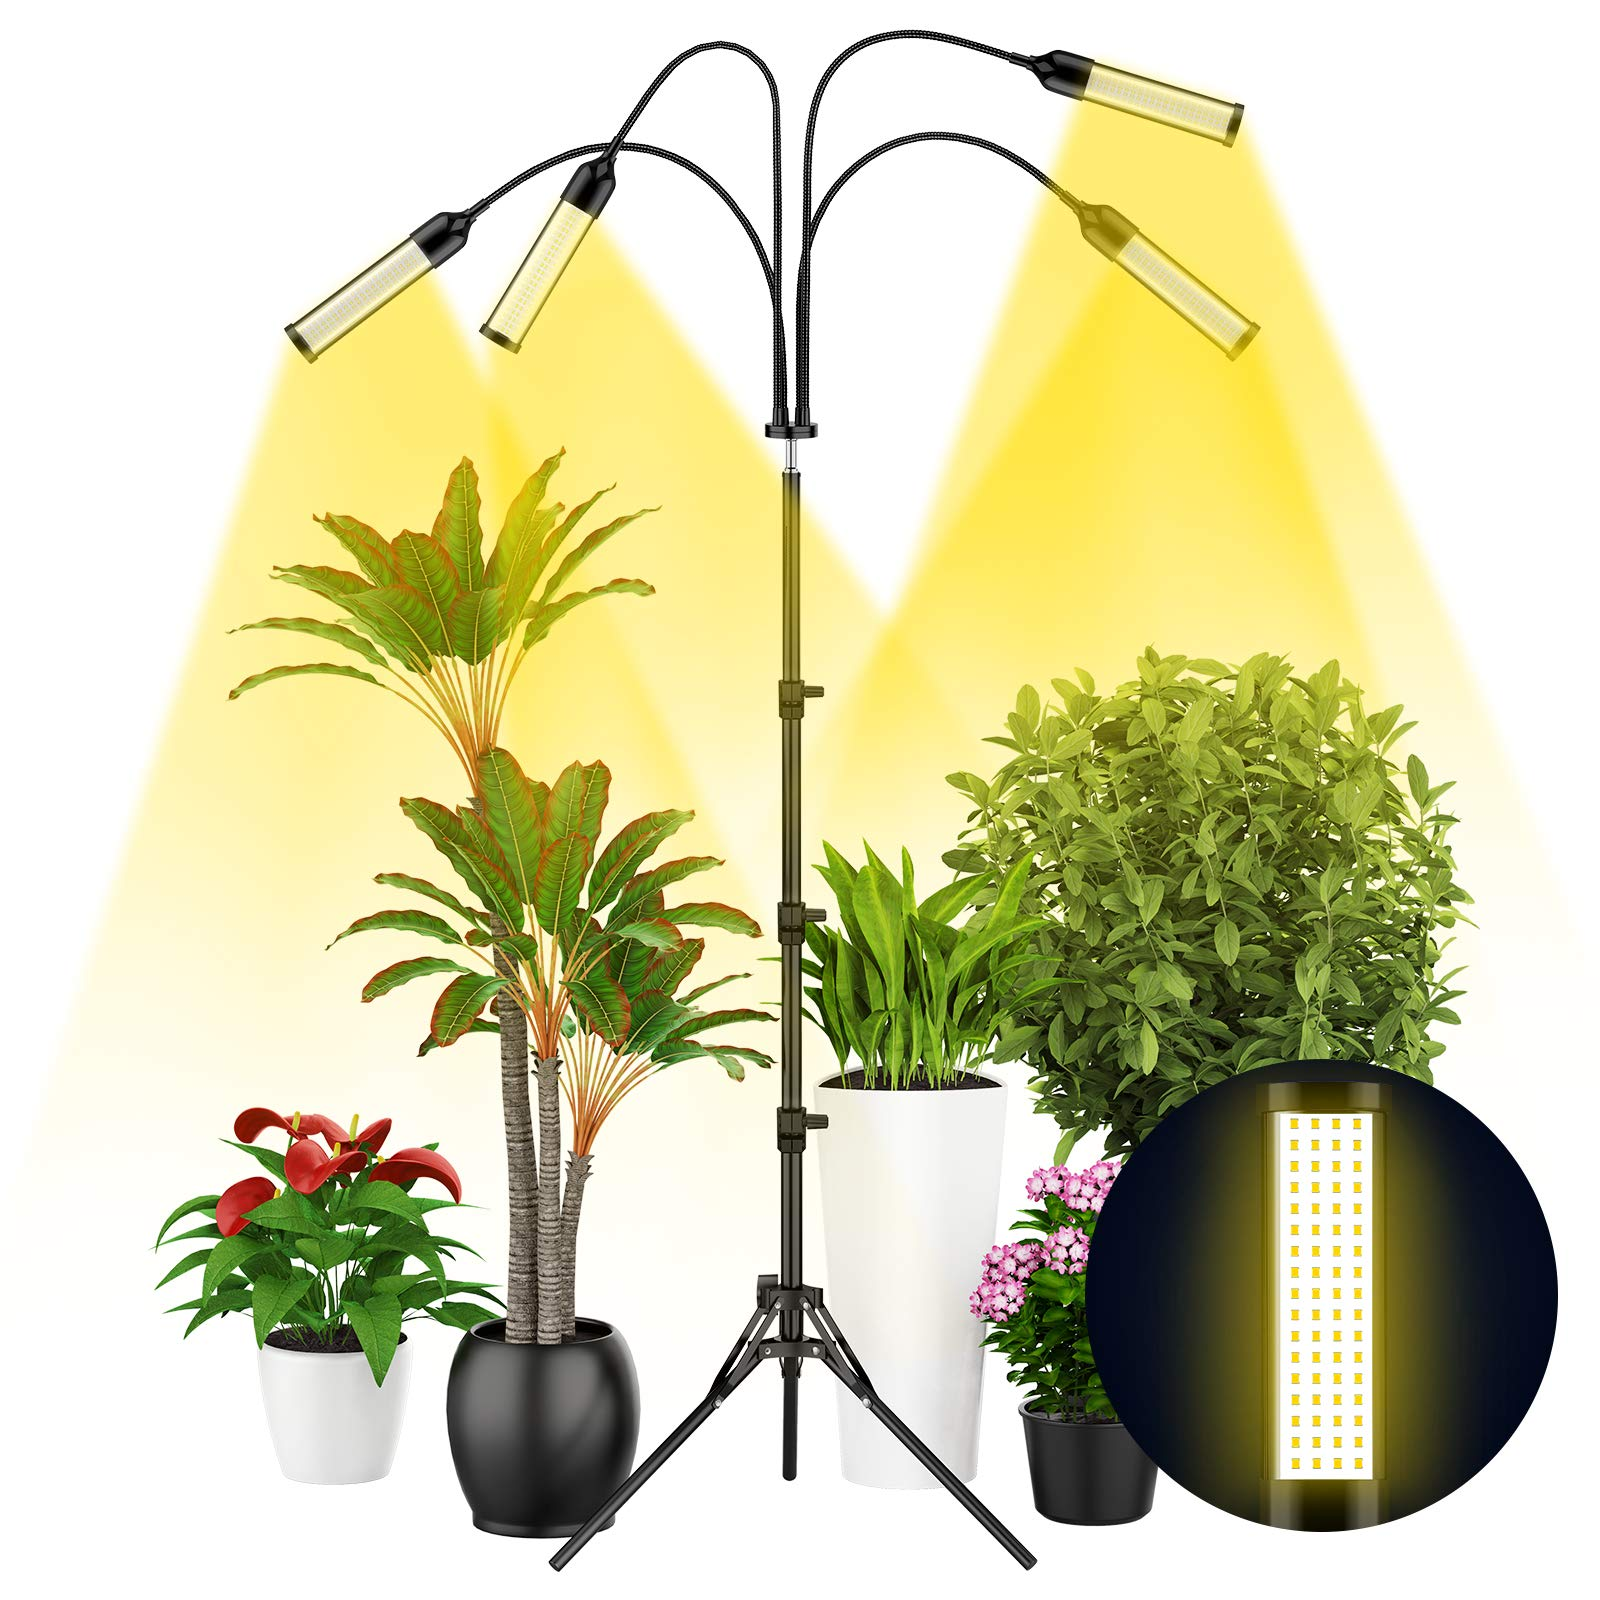 Grow Light with Tripod Stand, Balhvit 288PCS LED Grow Lights for Indoor Plants Full Spectrum with 3/6/12H Memory Timer & 6 Dimmable Levels, Sunlike Floor Plant Light for All Growth Stages